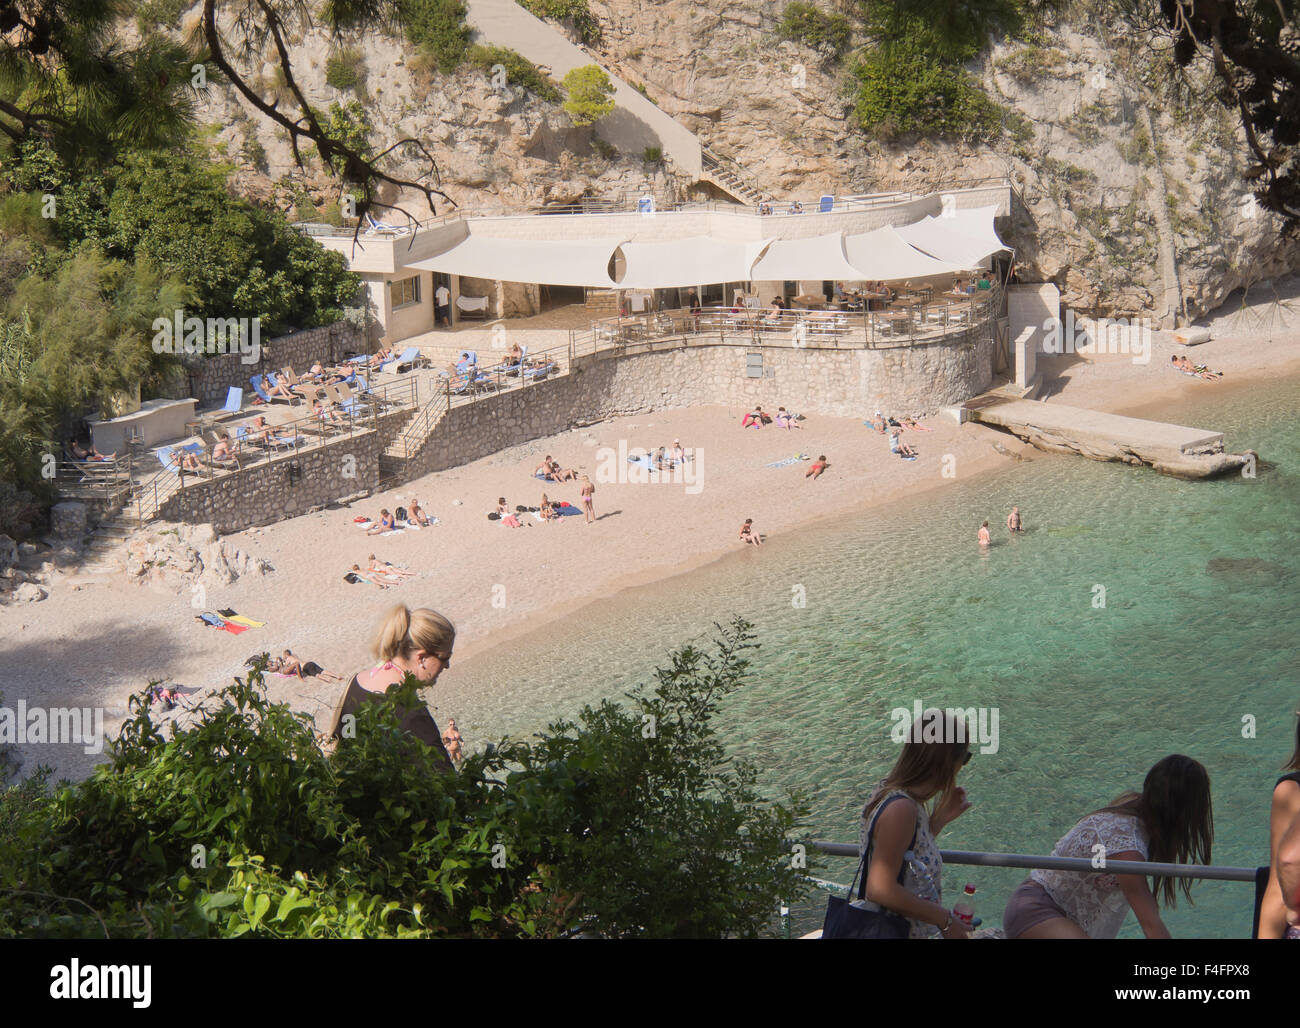 A small cove with pebble beach and steep cliffs, Dalmatian coast at its most picturesque, Bellevue Dubrovnik Croatia - Stock Image